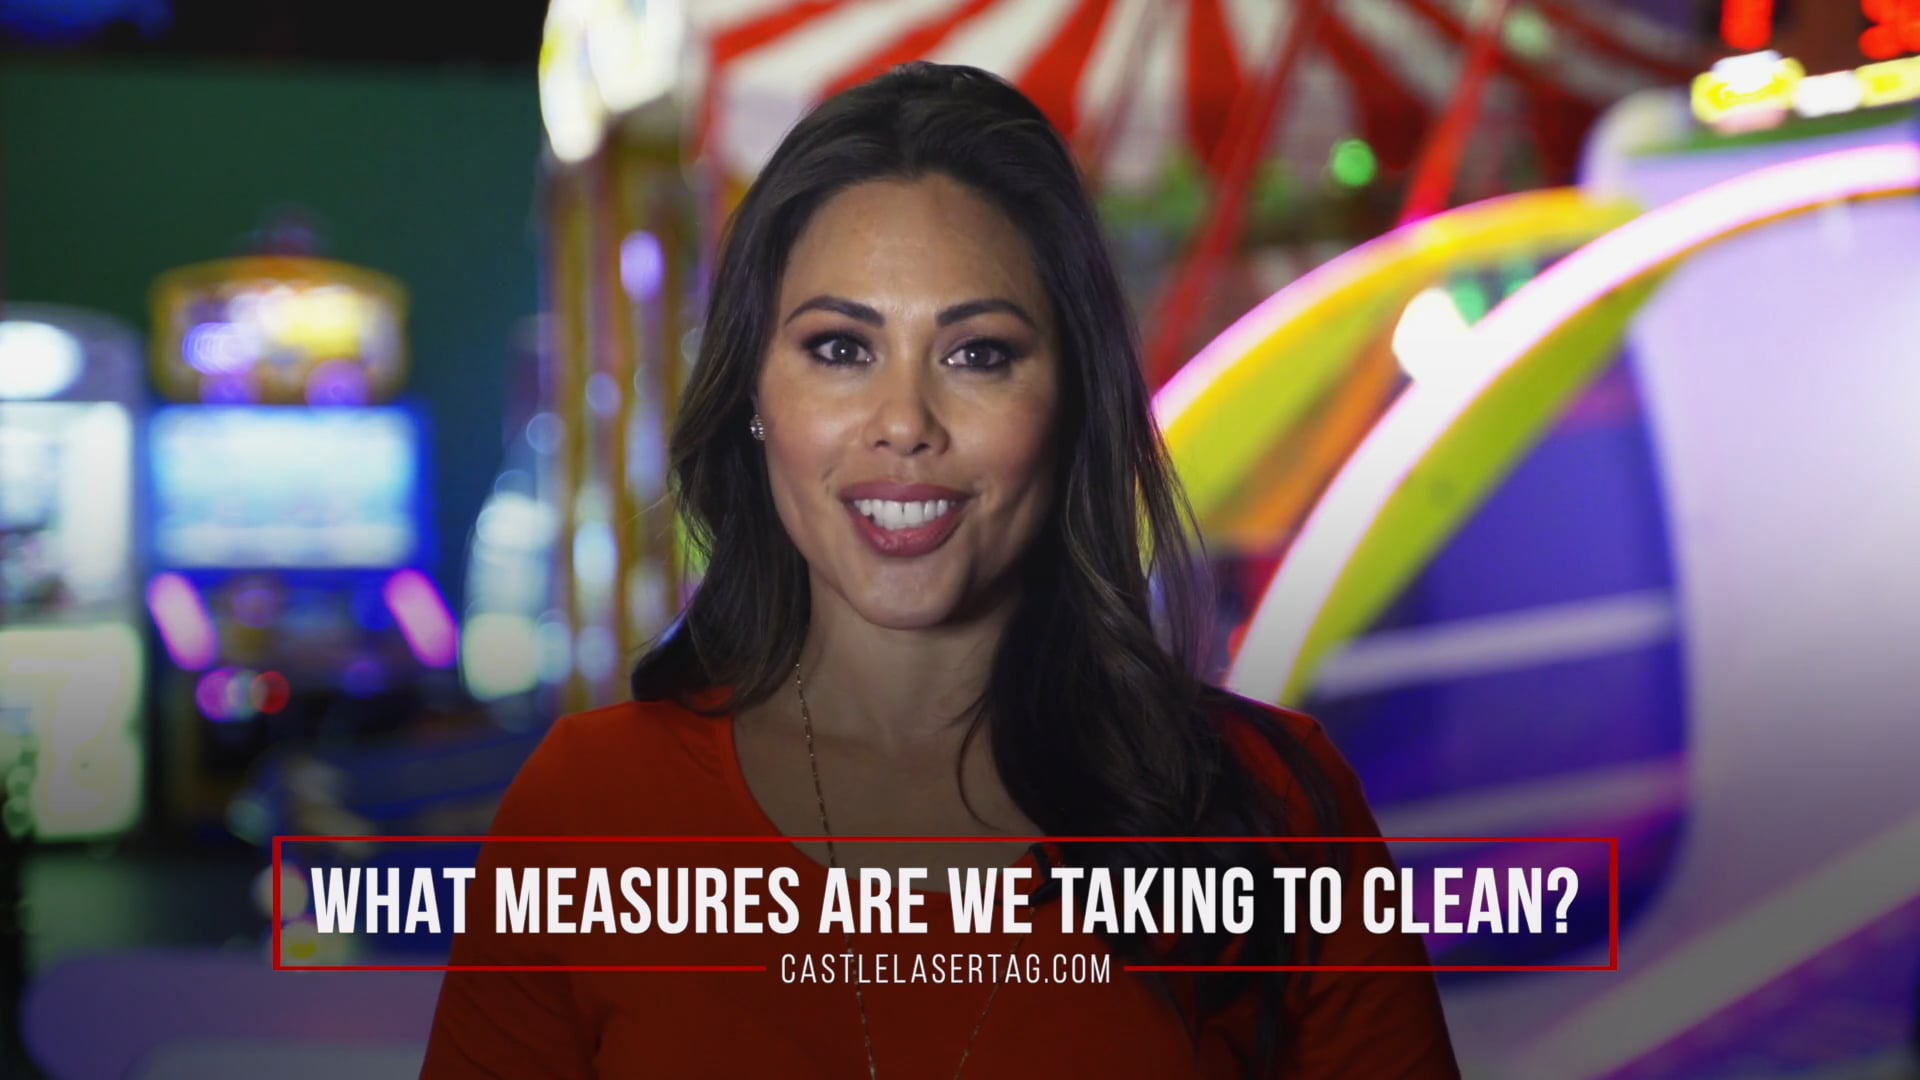 What measures are we taking to clean and disinfect our facilities?